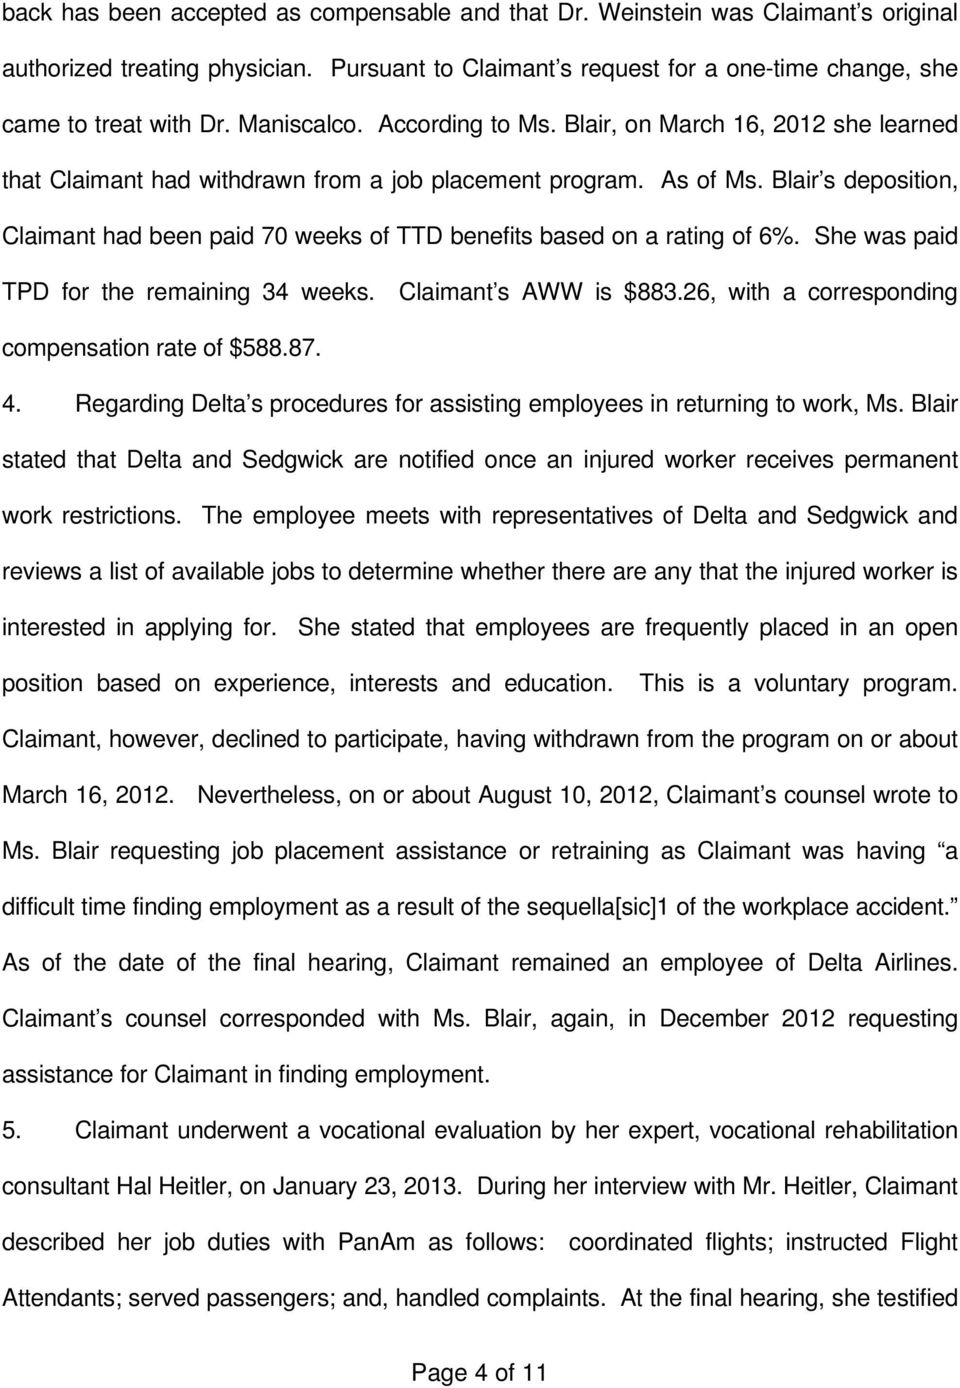 Blair s deposition, Claimant had been paid 70 weeks of TTD benefits based on a rating of 6%. She was paid TPD for the remaining 34 weeks. Claimant s AWW is $883.